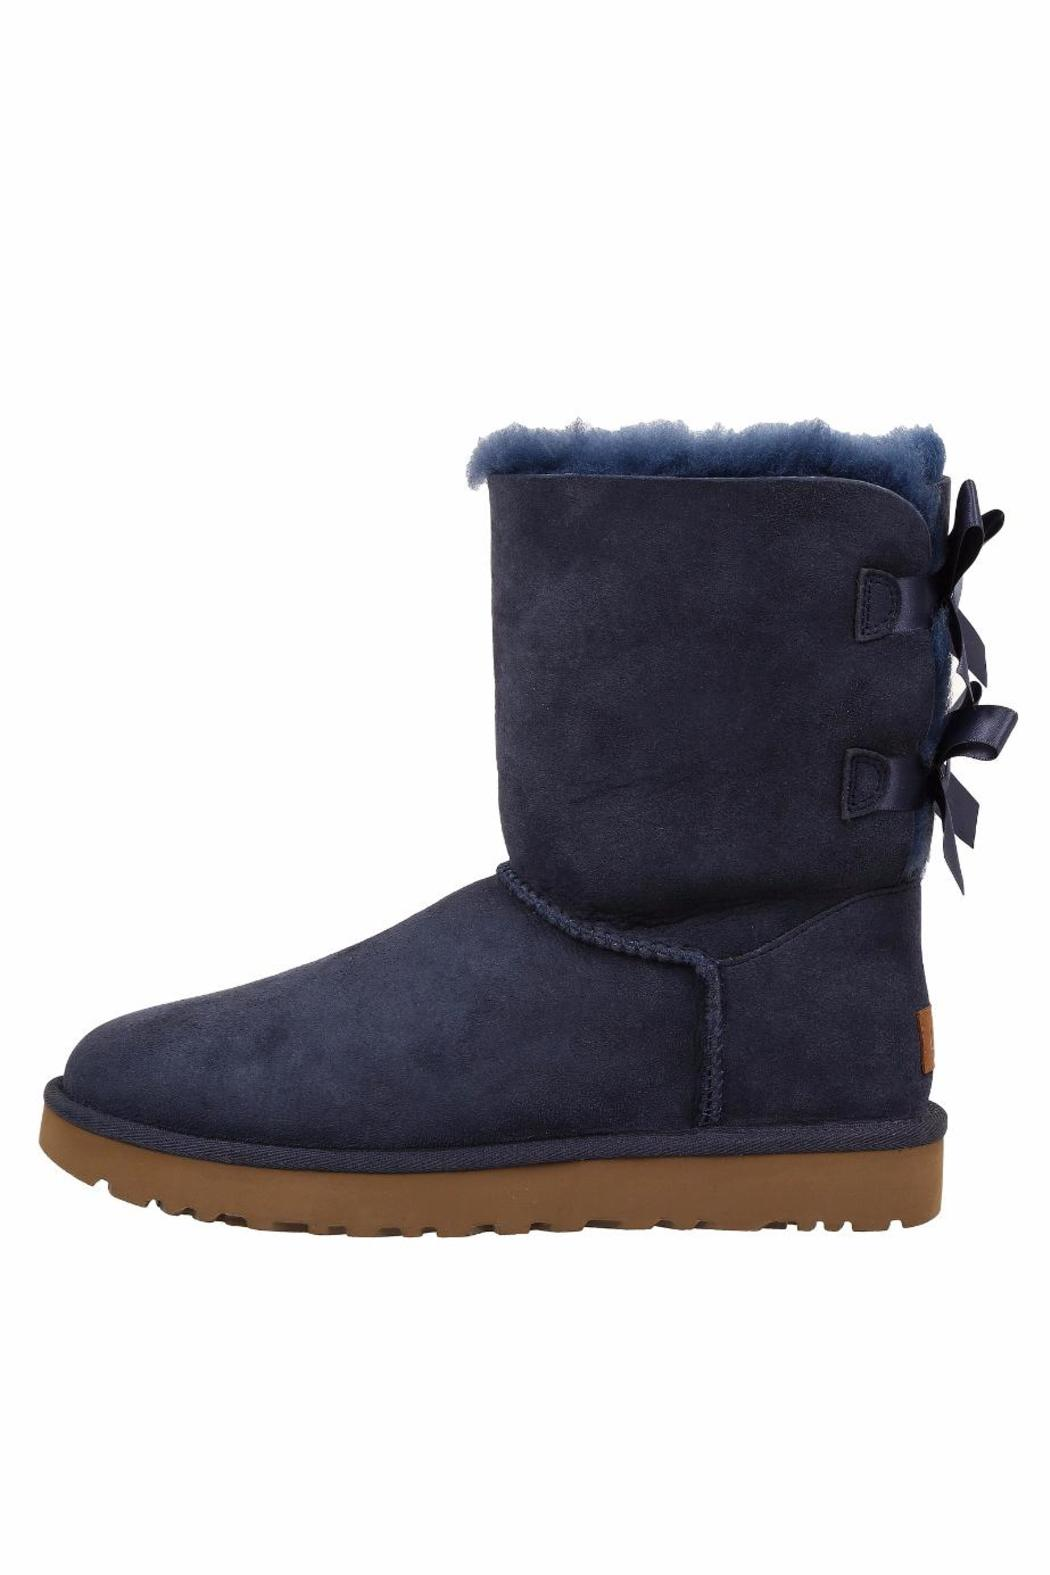 ugg australia bailey bow nz